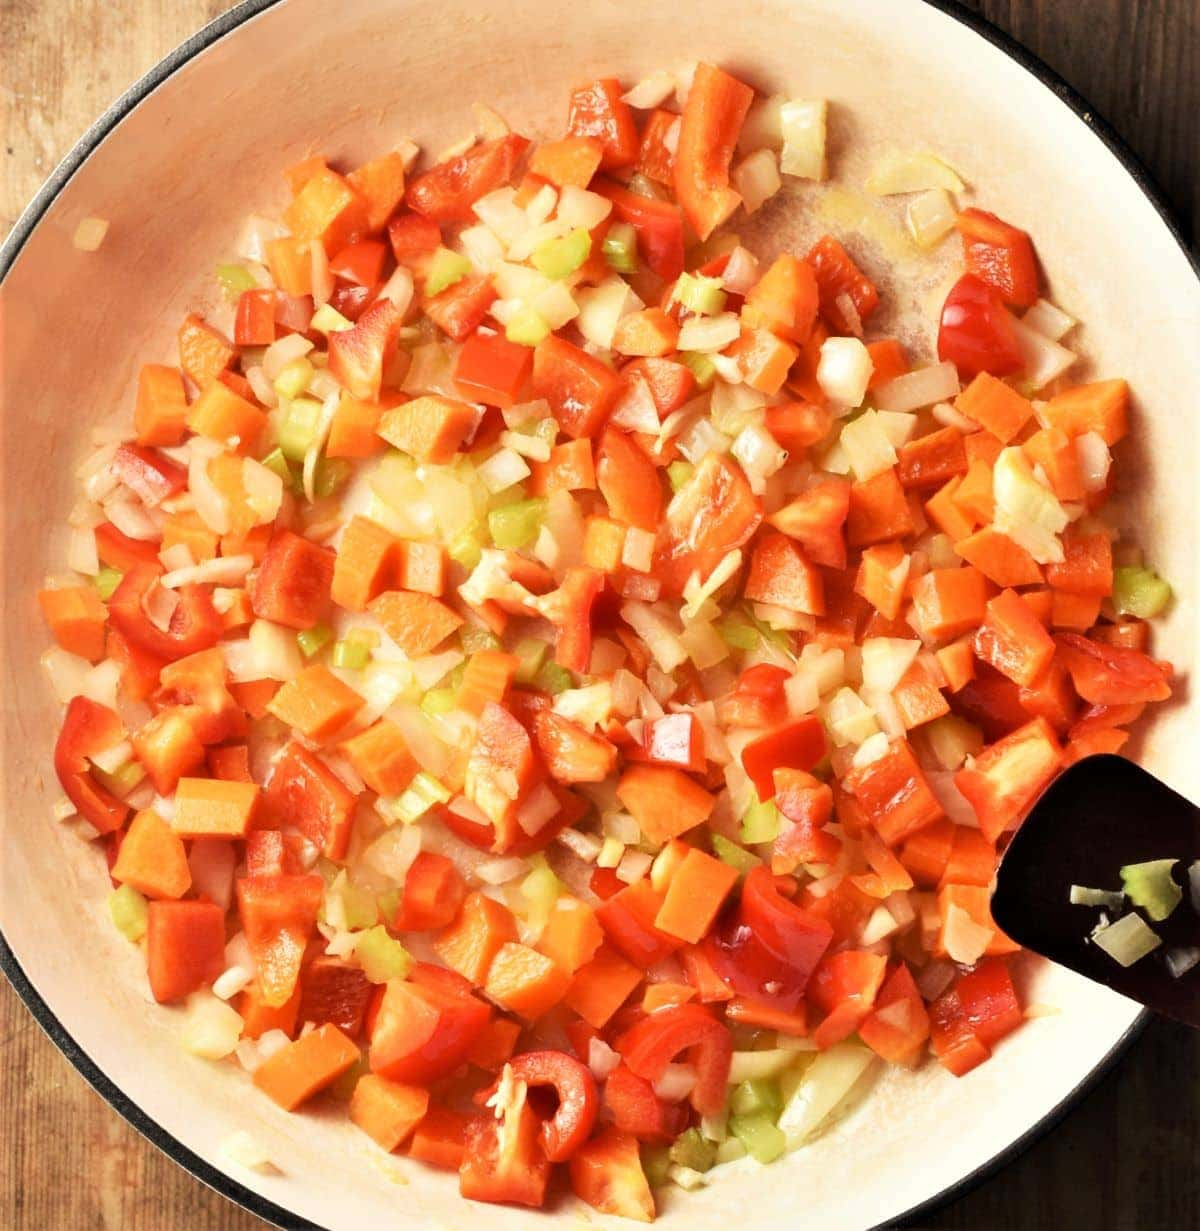 Chopped vegetables in white shallow pan.